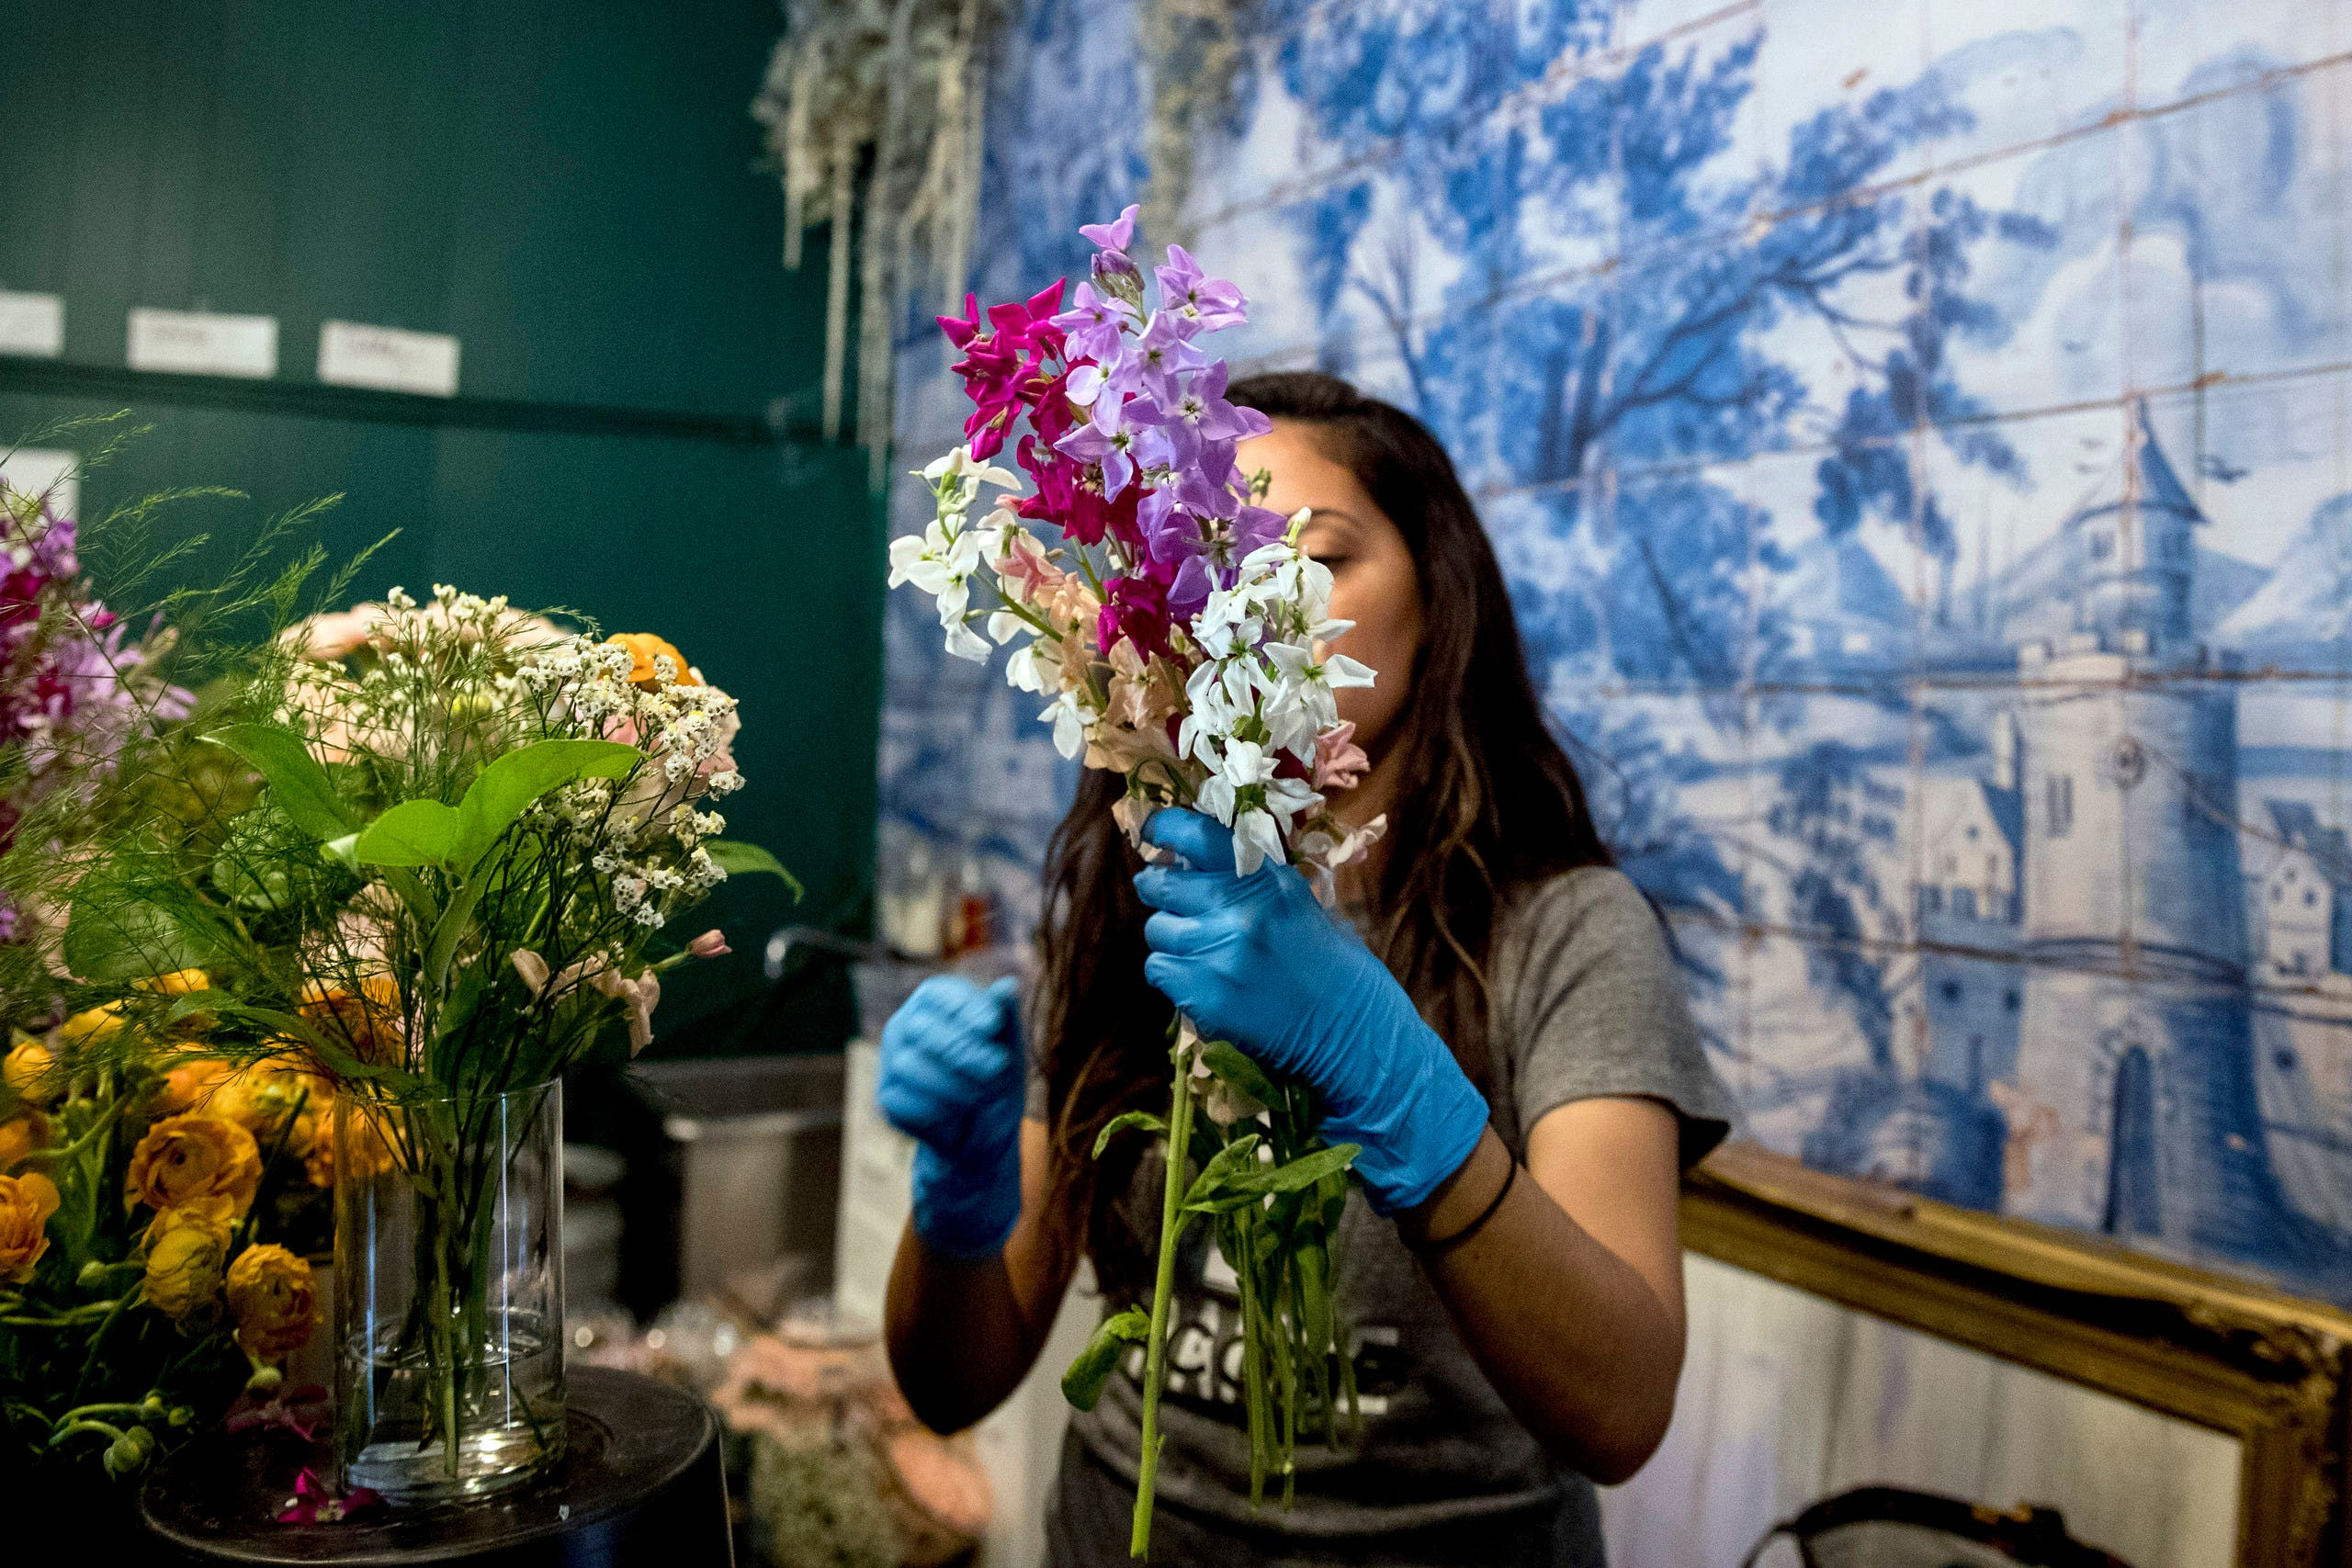 MJ Javan, prepares bouquets of flowers at the flower shop She Loves Me DC after they received an influx of orders during the coronavirus epidemic on March 20, 2020, in Washington. (AP)